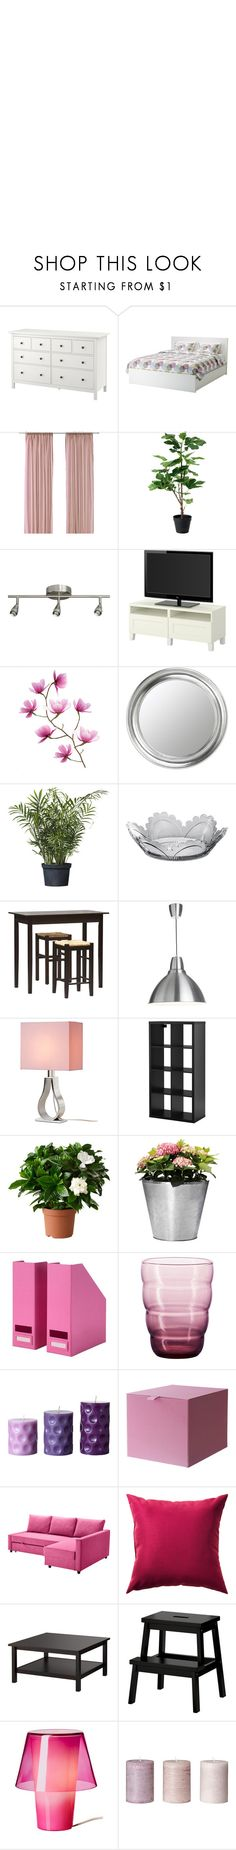 99% IKEA by marti64 on Polyvore featuring interior, interiors, interior design, home, home decor, interior decorating, Linon, ikea, studioapartment and under2500